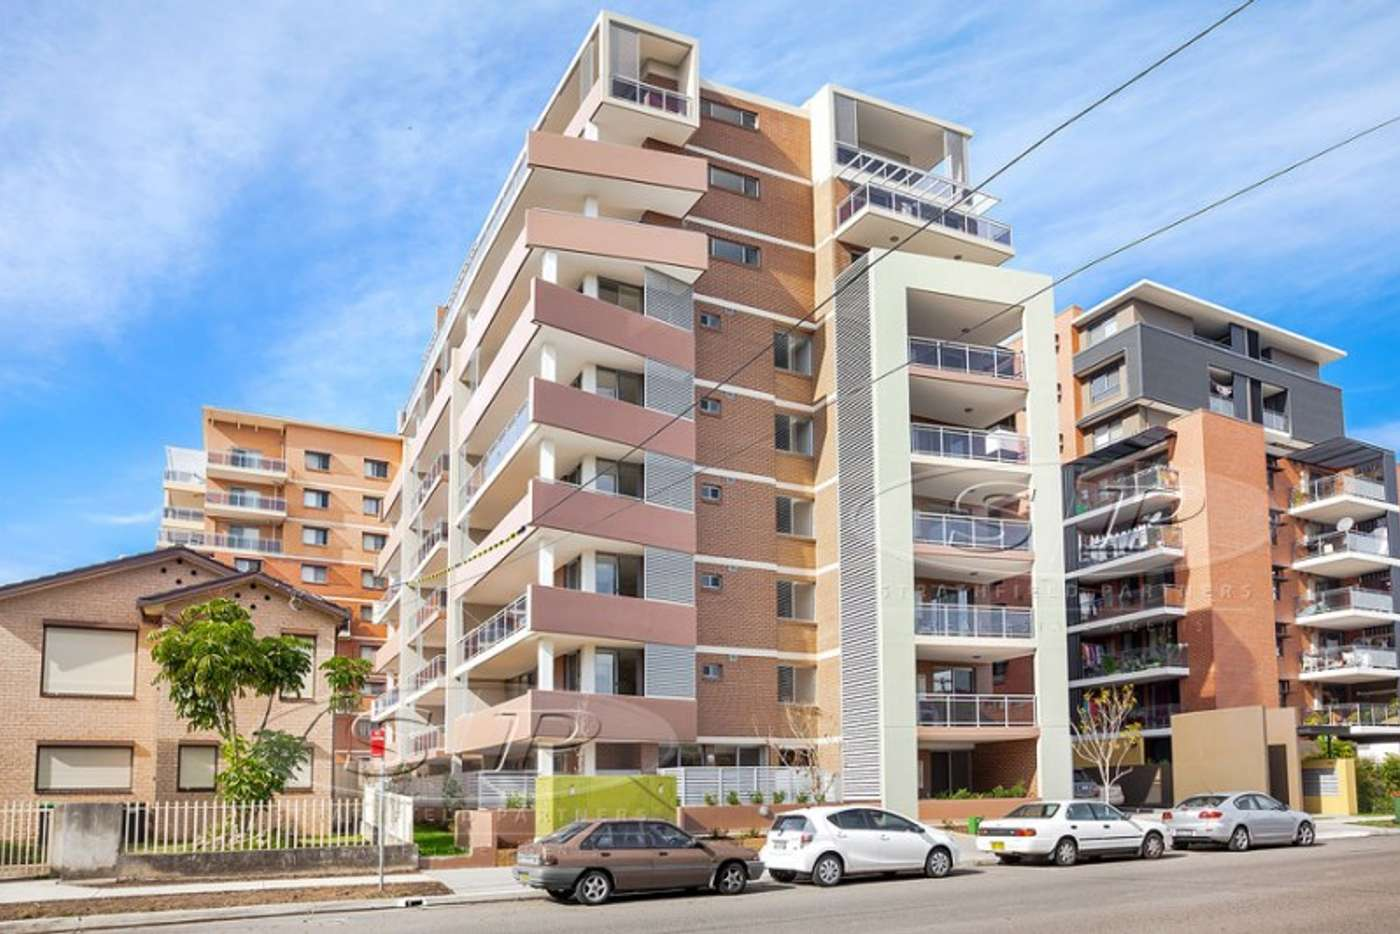 Main view of Homely unit listing, 32/12-14 George Street, Liverpool NSW 2170